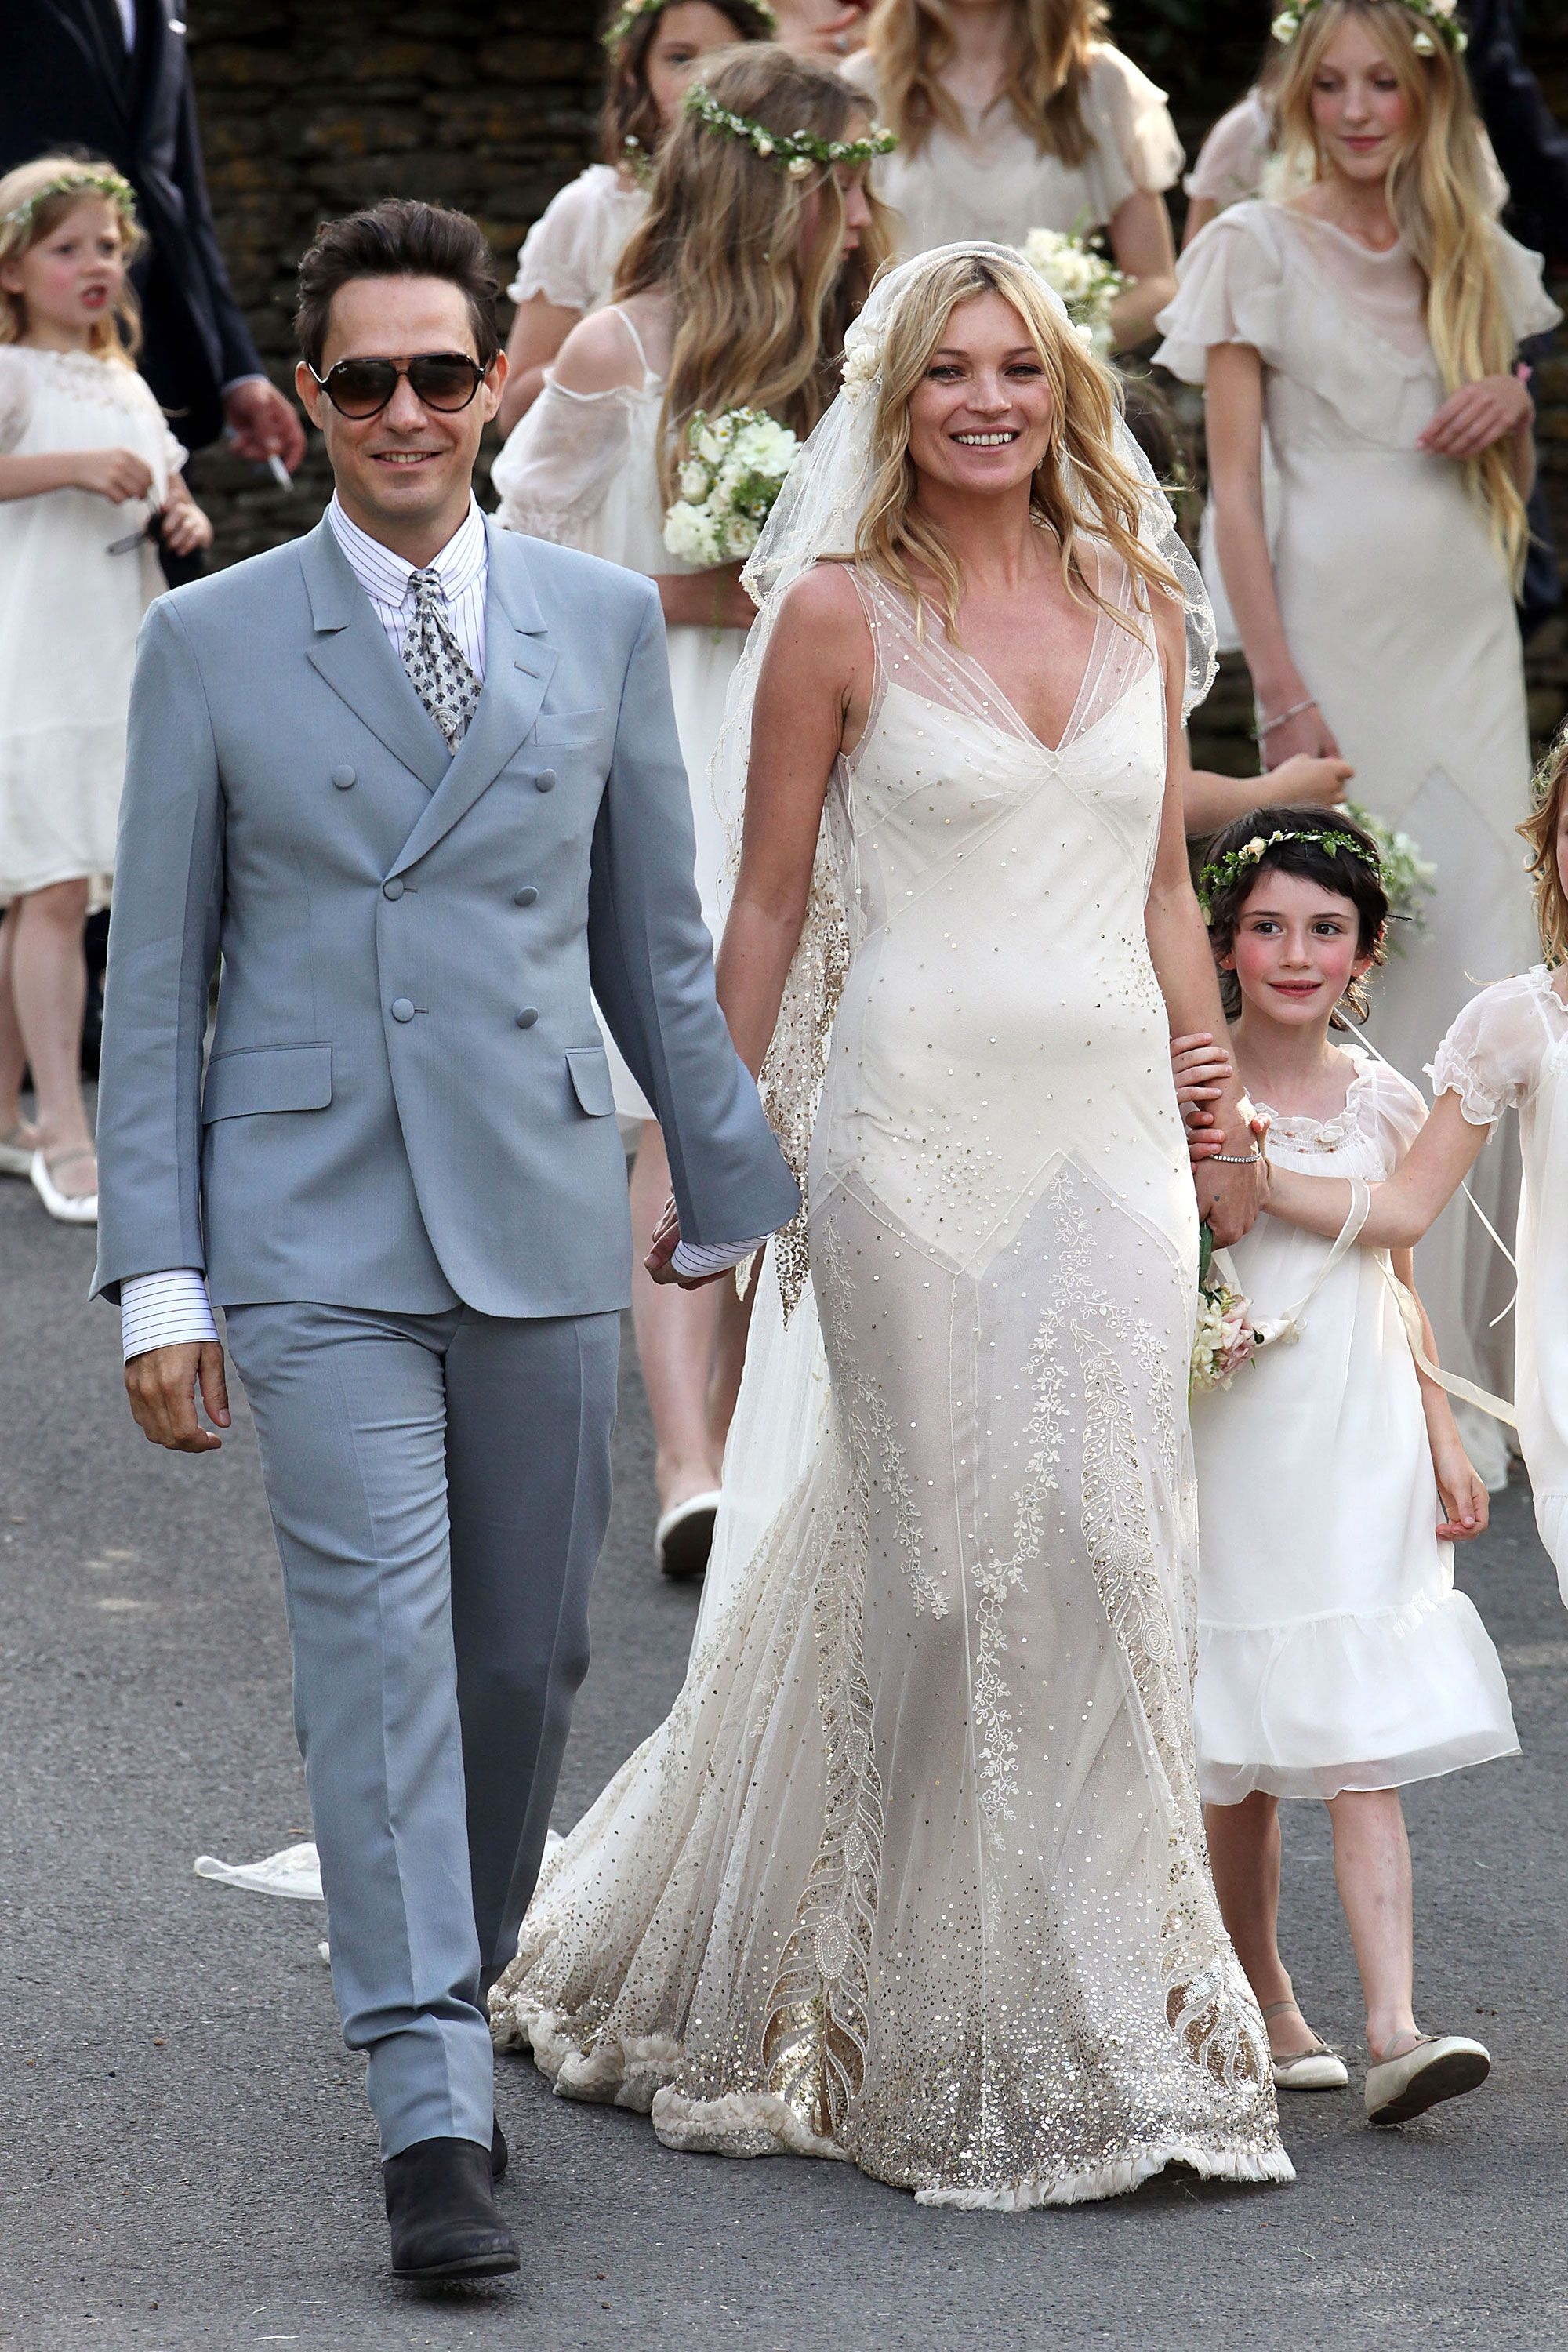 50 Iconic Celebrity Wedding Most Memorable Gowns In History